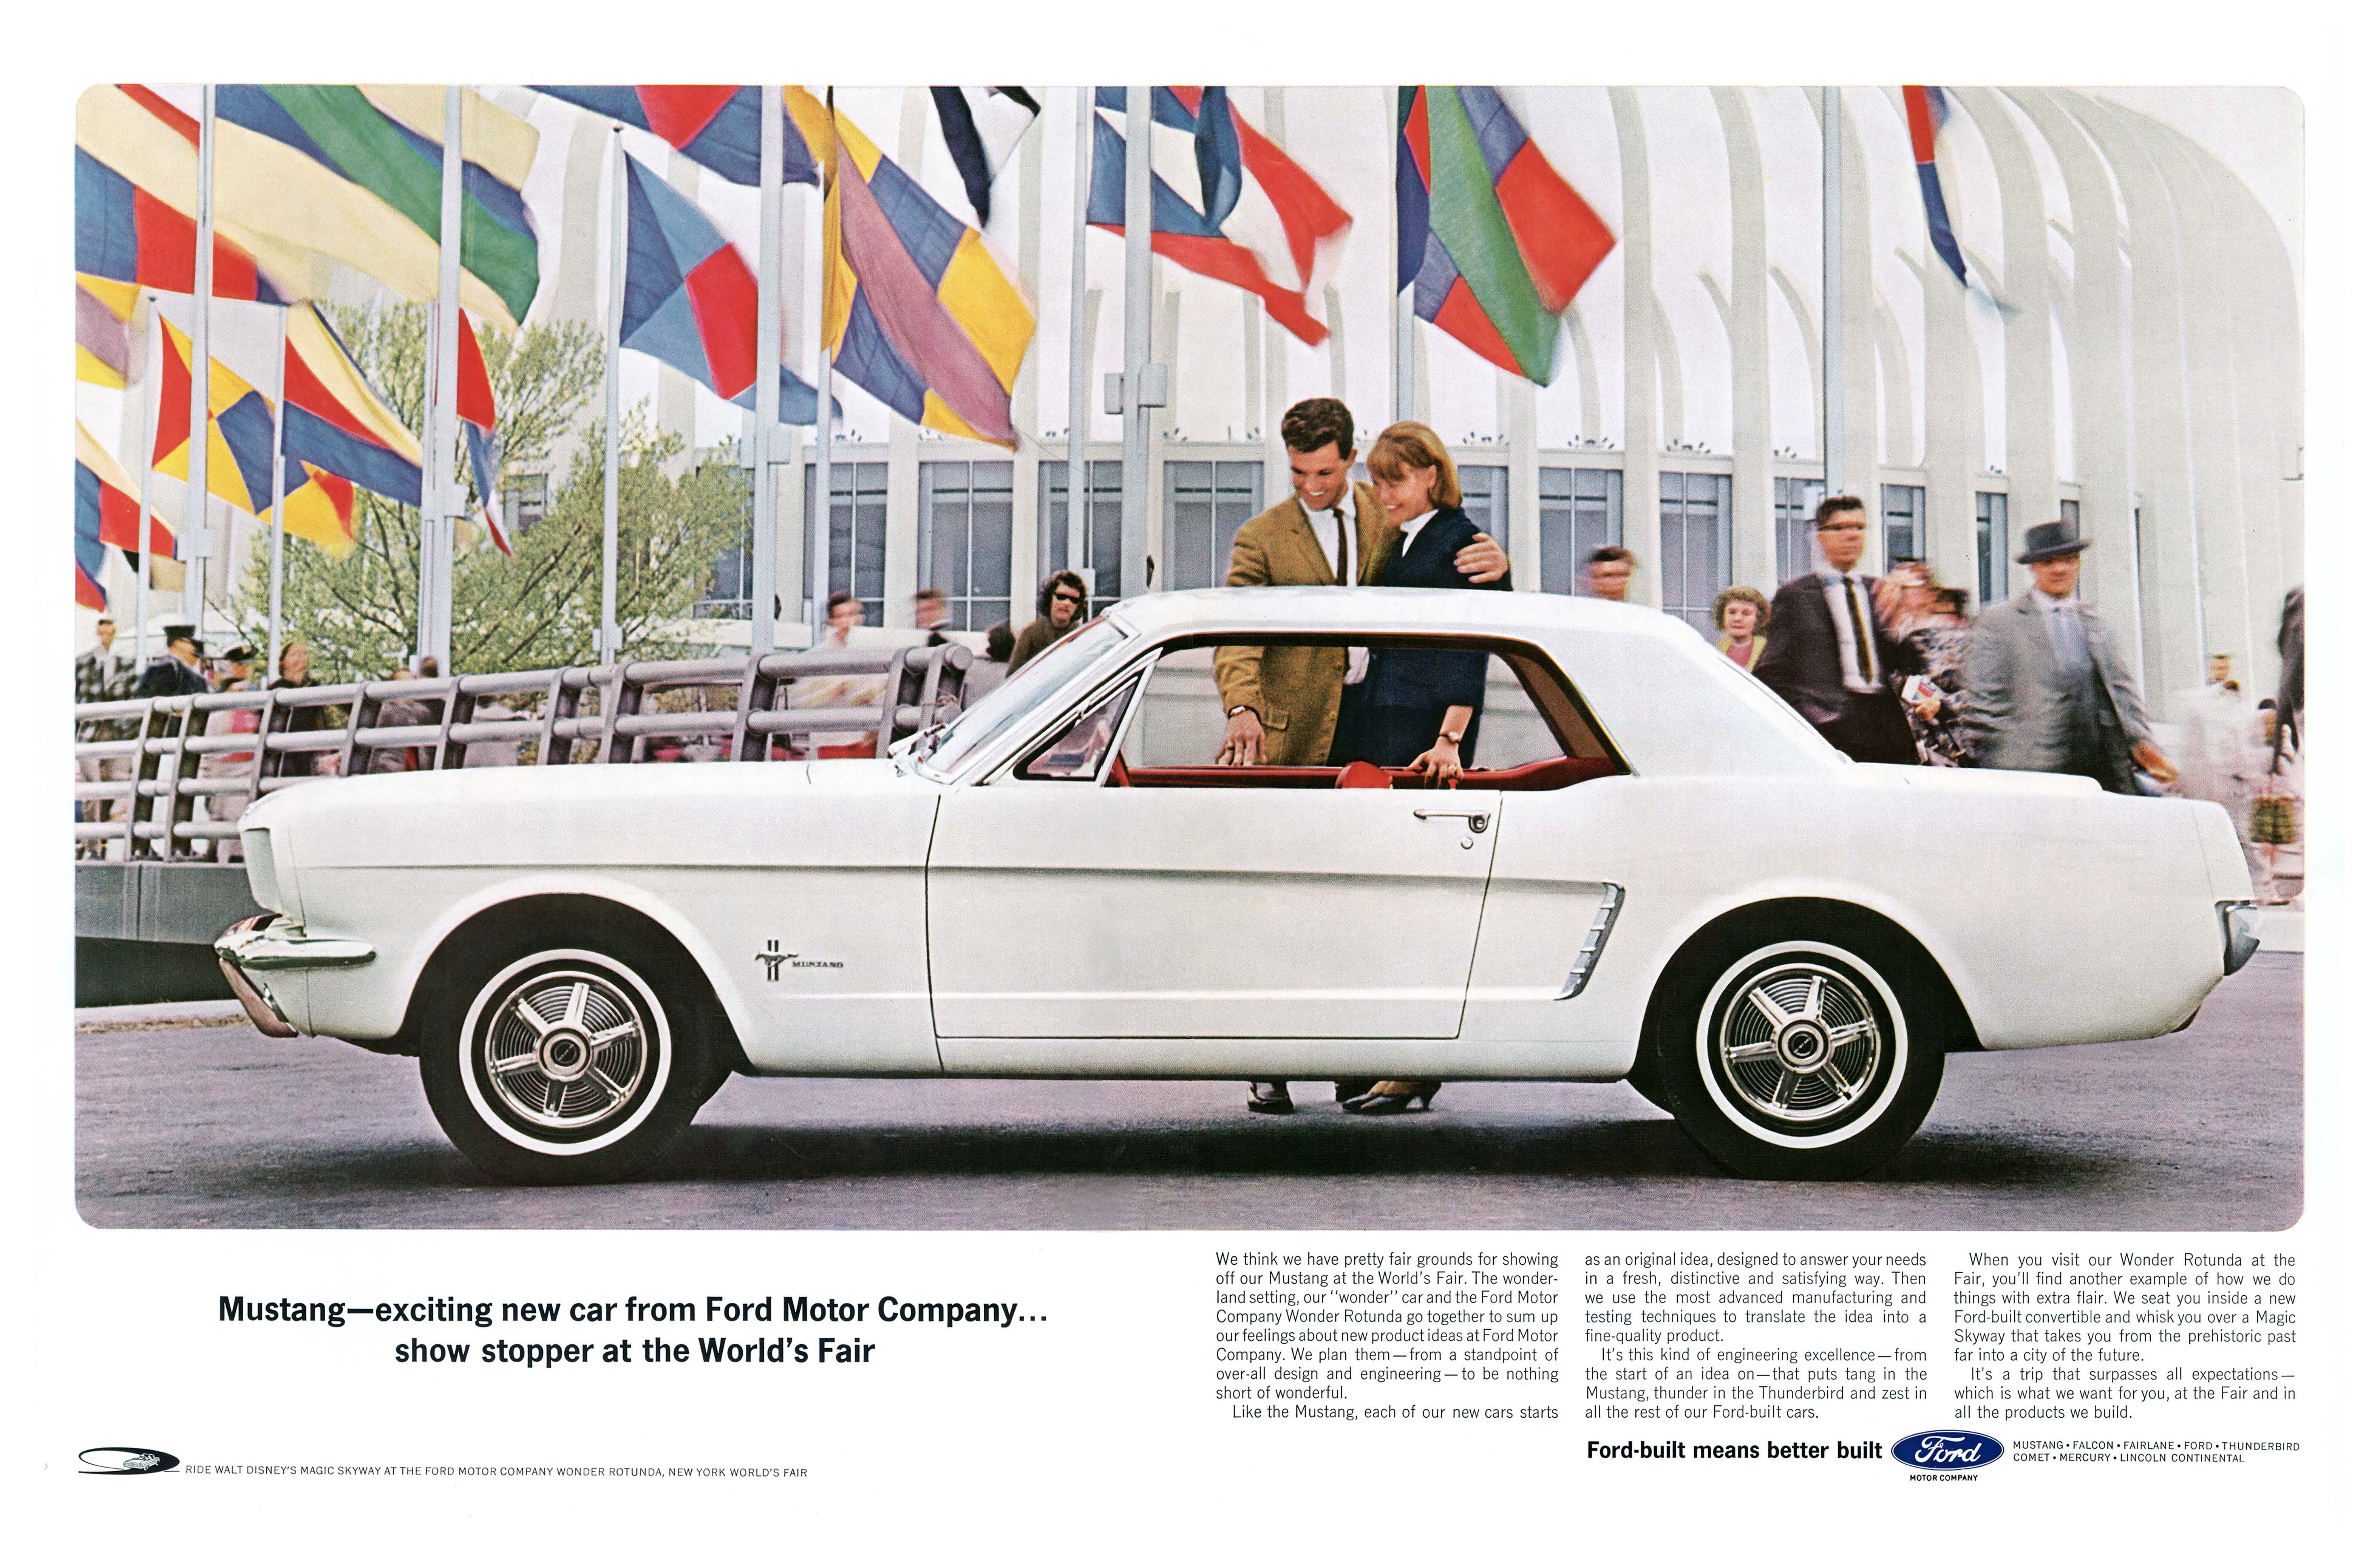 1964 ford mustang worlds fair ny ny 21x13 7 2 page spread